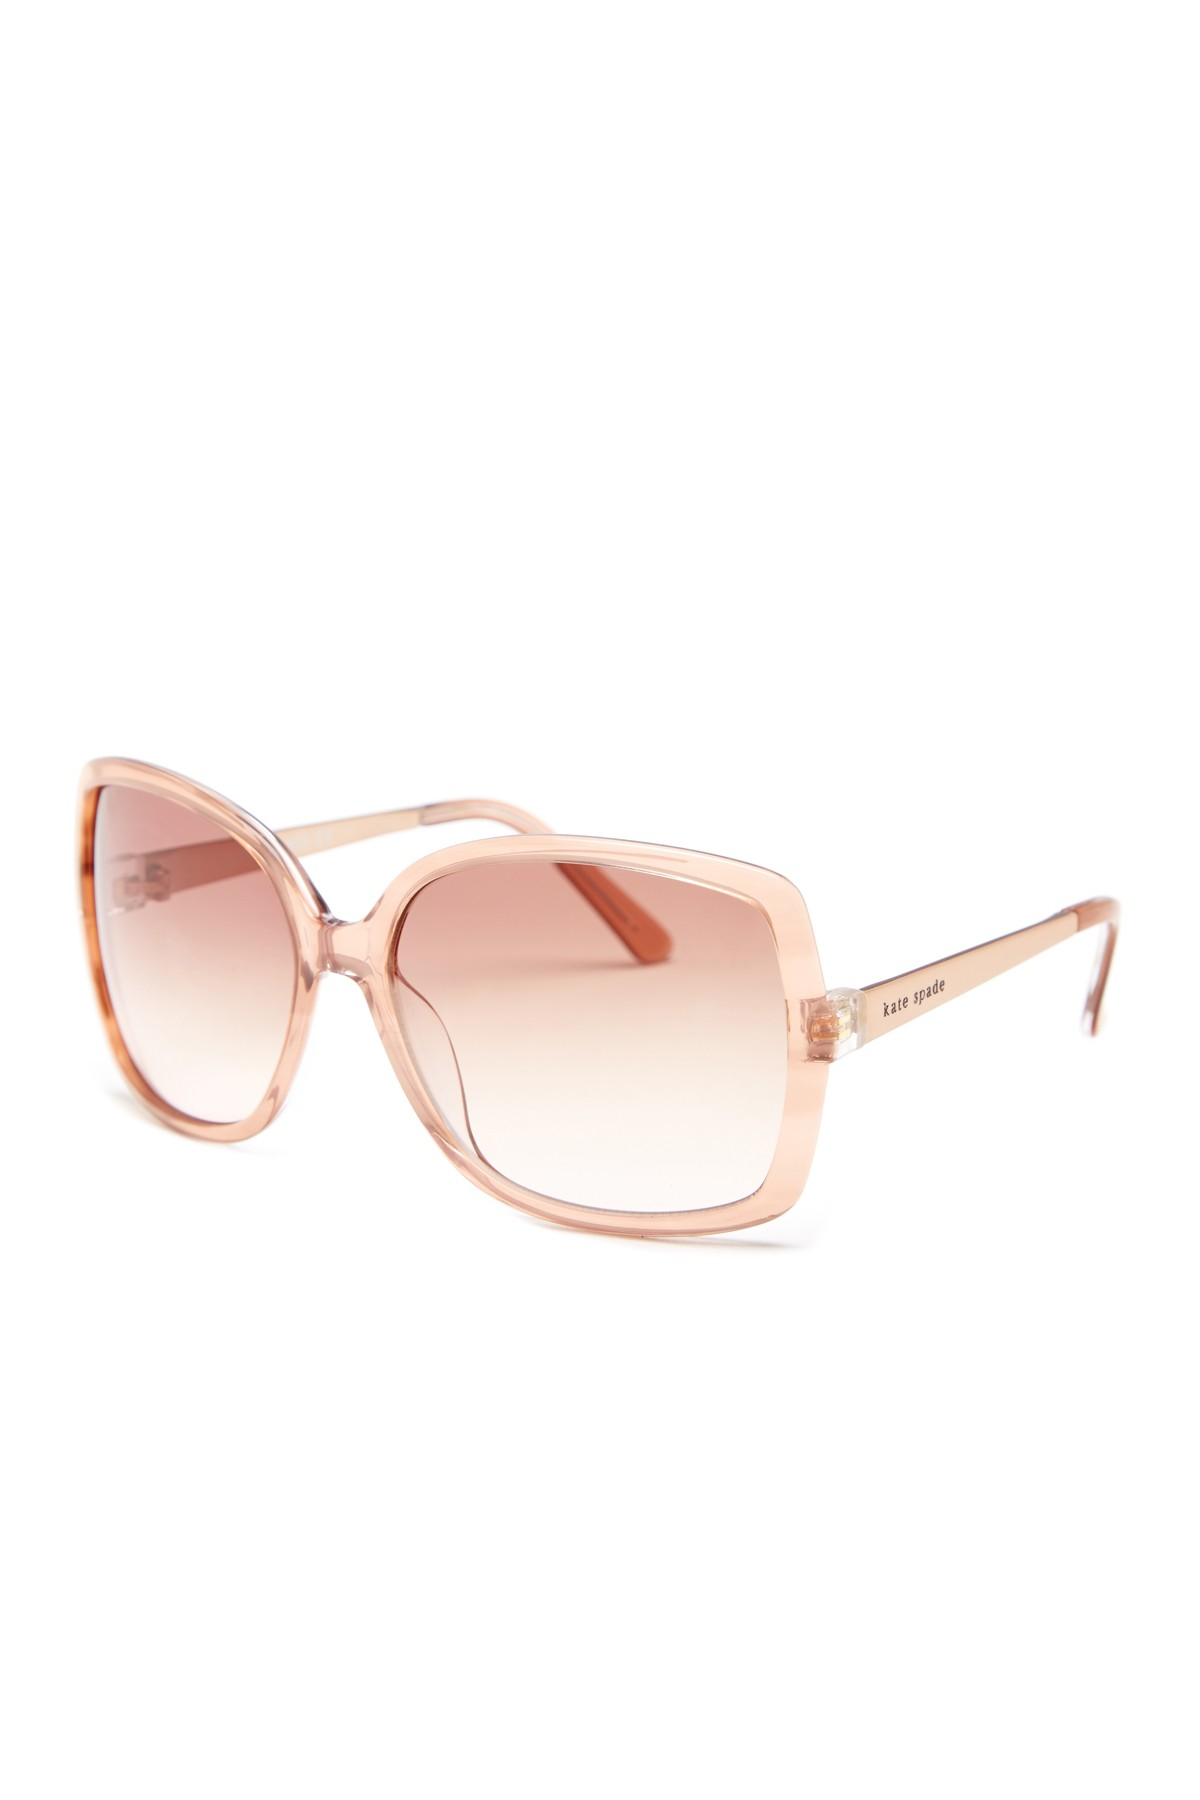 814093f856 Lyst - Kate Spade New York Women s Darrys Oversized Sunglasses in Pink